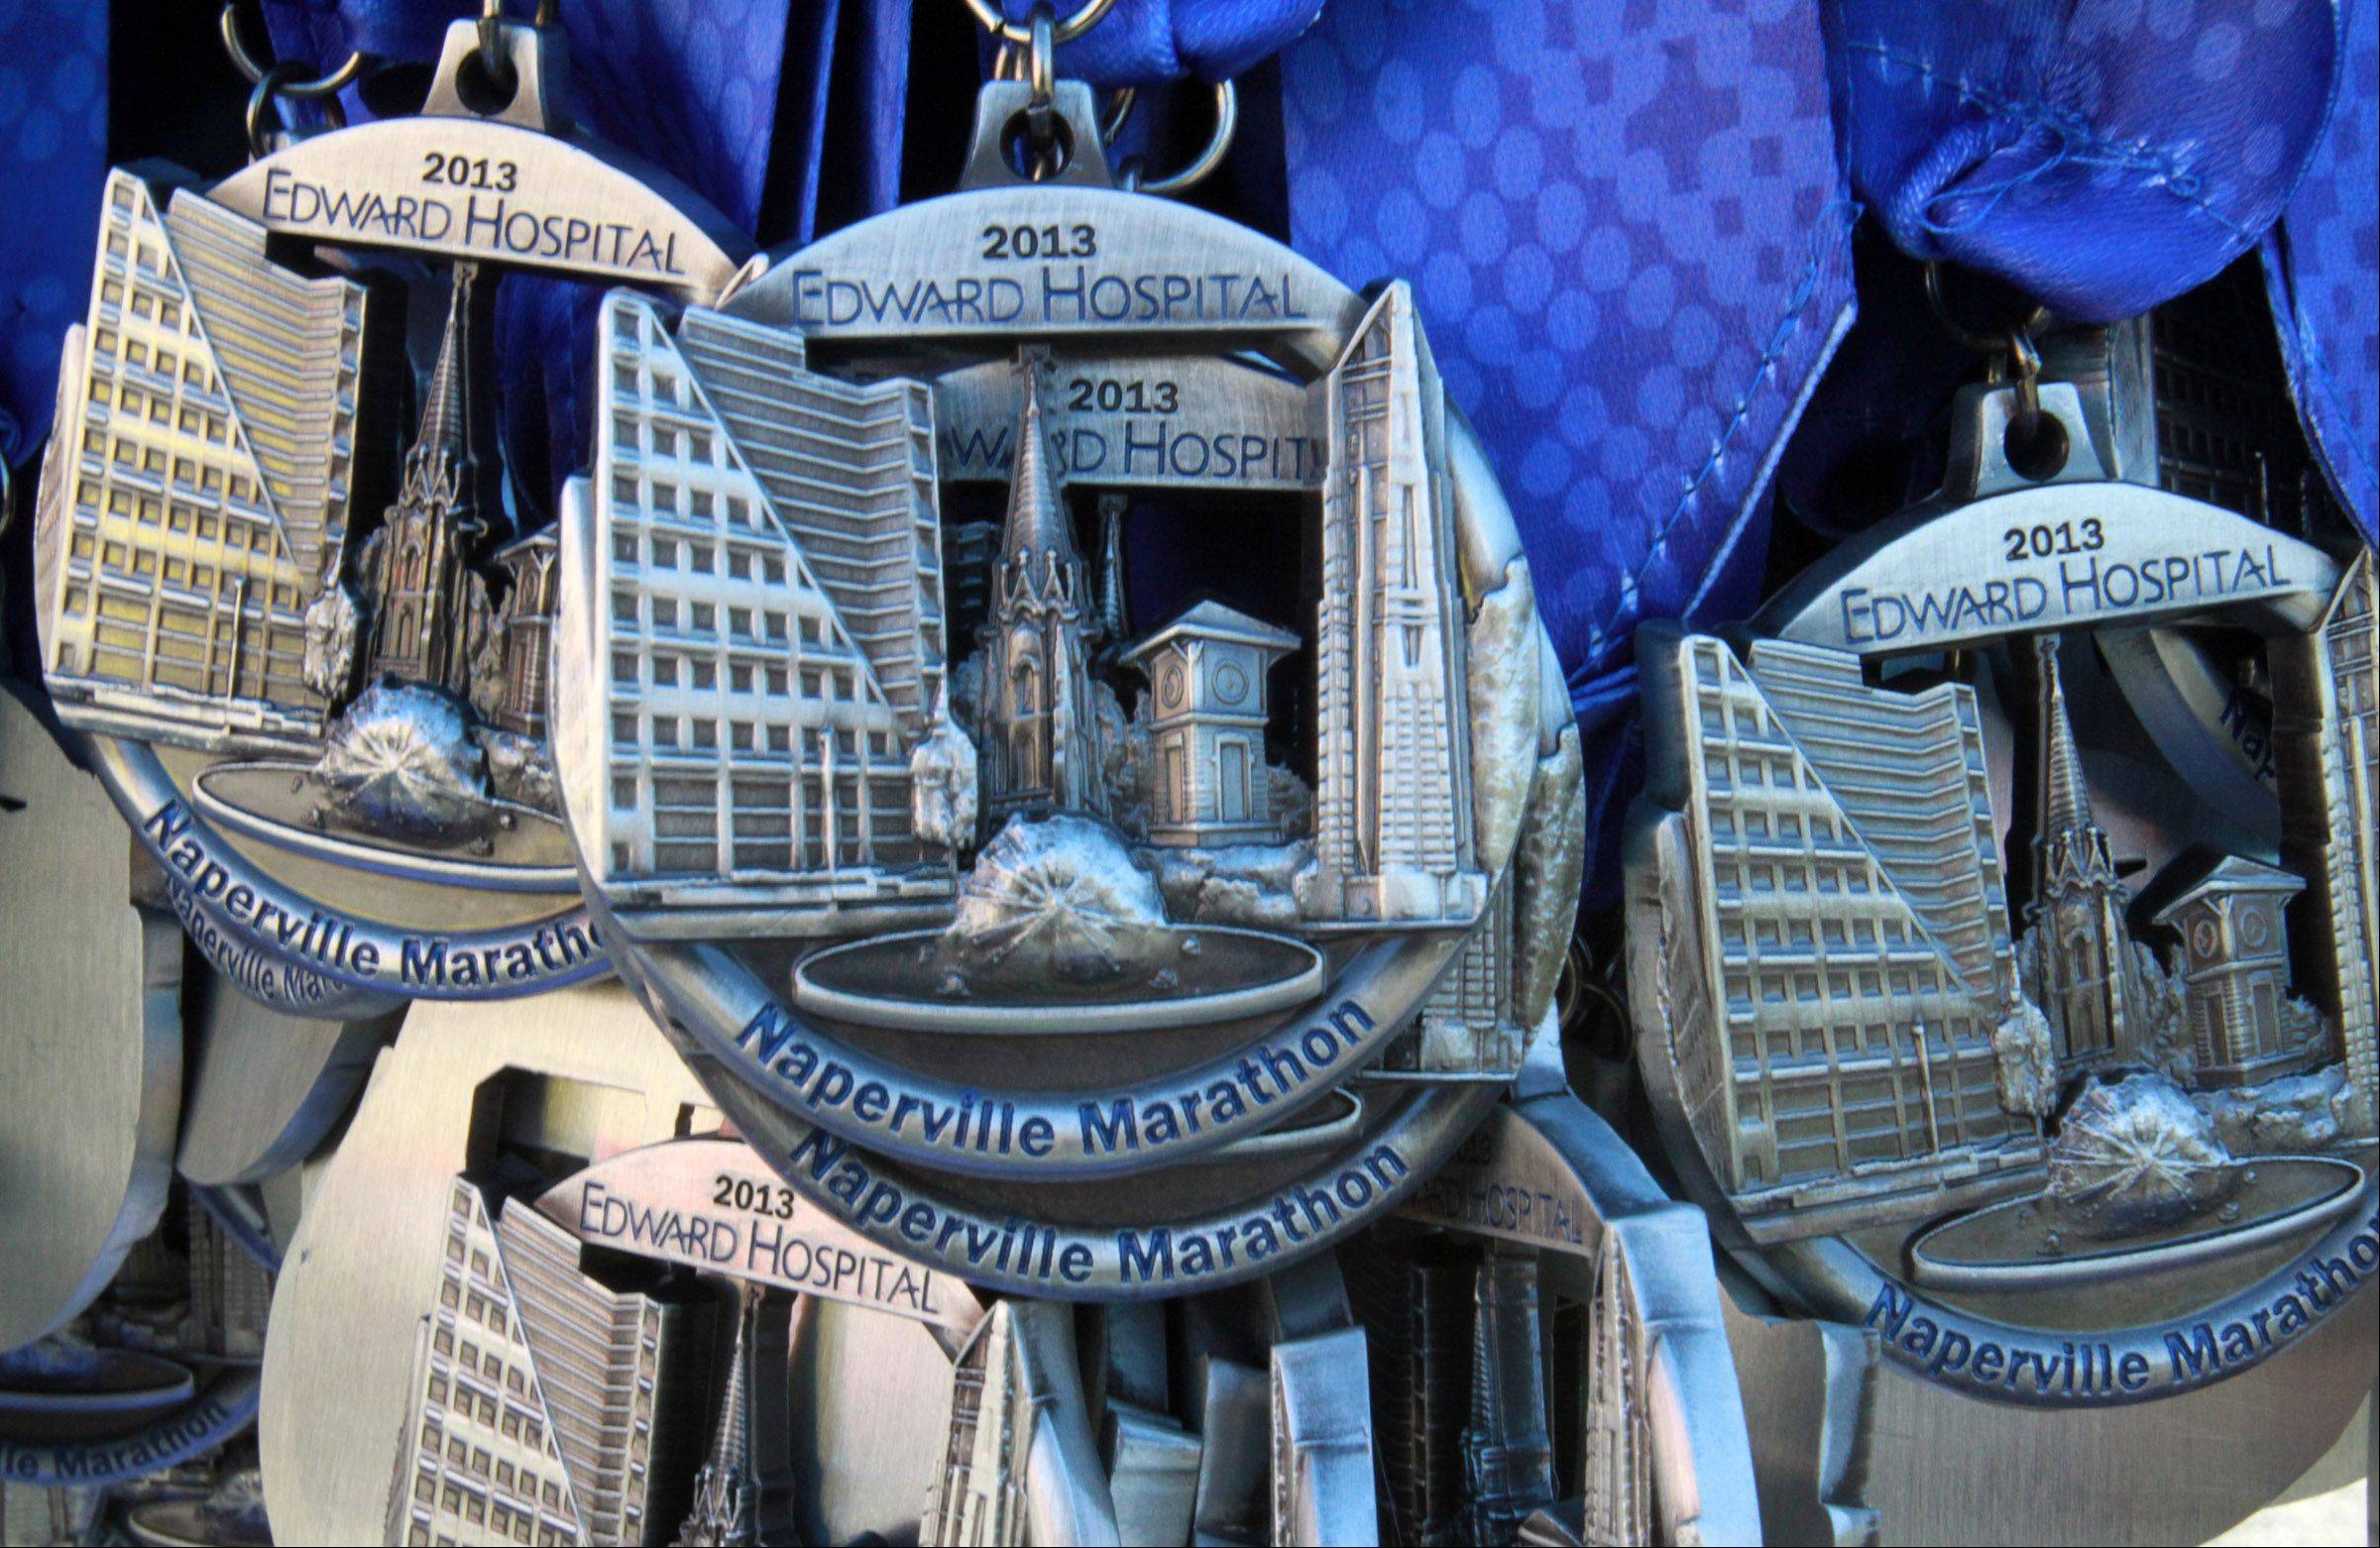 Each runner who completed the Naperville marathon or half marathon received a medal.